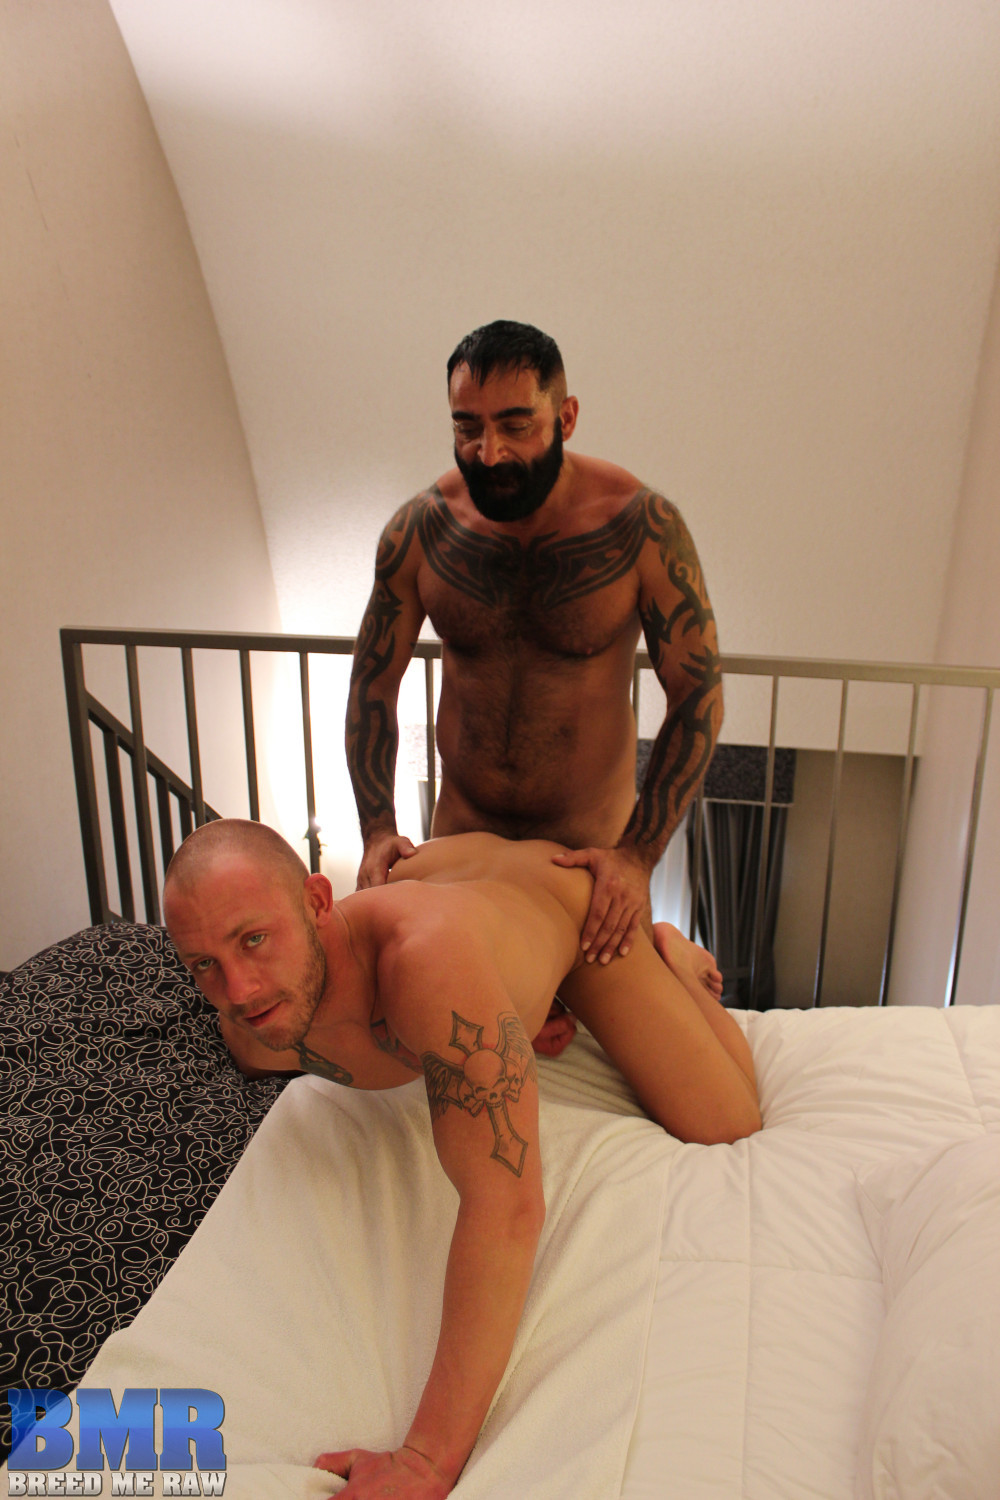 Breed-Me-Raw-Tom-Colt-and-Preston-Johnson-Hairy-Daddy-Barebacking-Amateur-Gay-Porn-11 Amateur Hairy Tatted Daddy Barebacking a Hot Young Smooth Bottom